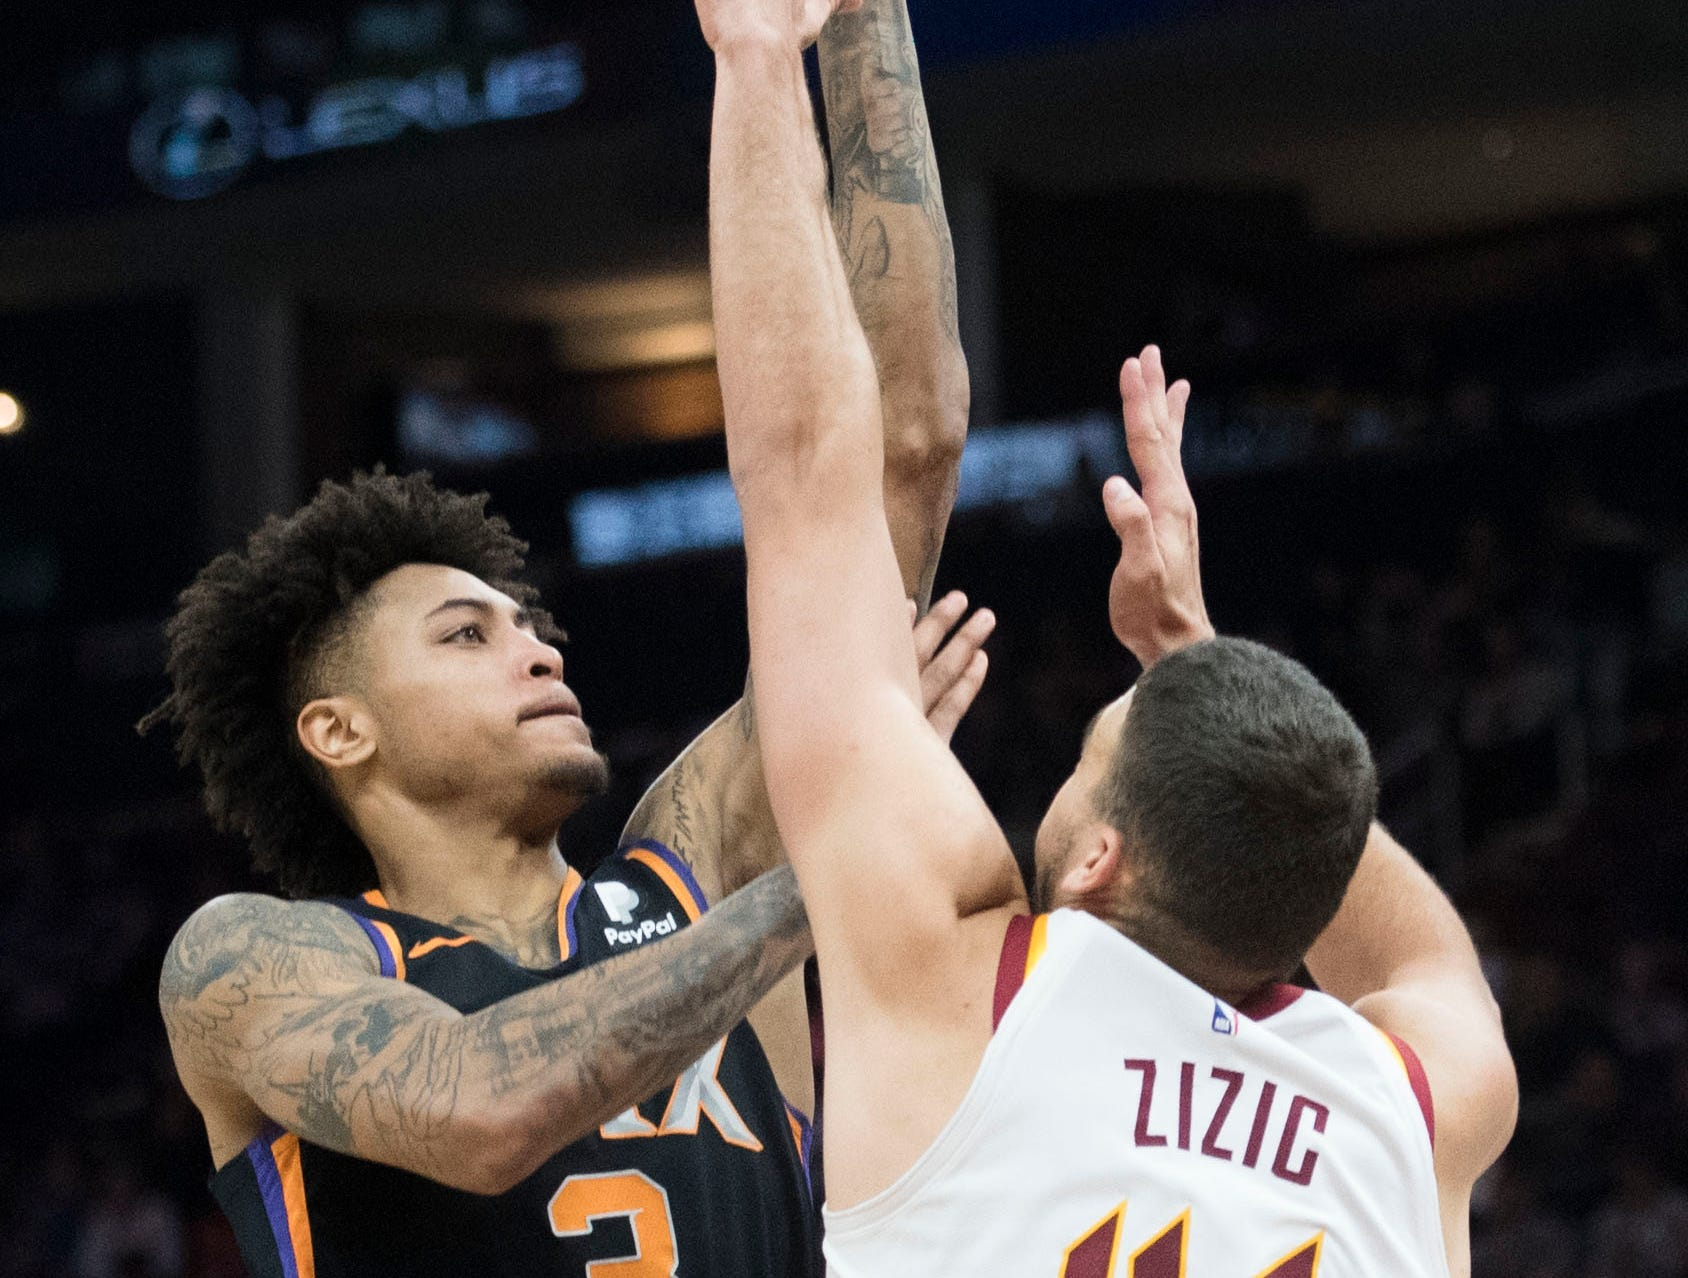 Feb 21, 2019; Cleveland, OH, USA; Phoenix Suns forward Kelly Oubre Jr. (3) shoots over Cleveland Cavaliers center Ante Zizic (41) during the first half at Quicken Loans Arena. Mandatory Credit: Ken Blaze-USA TODAY Sports